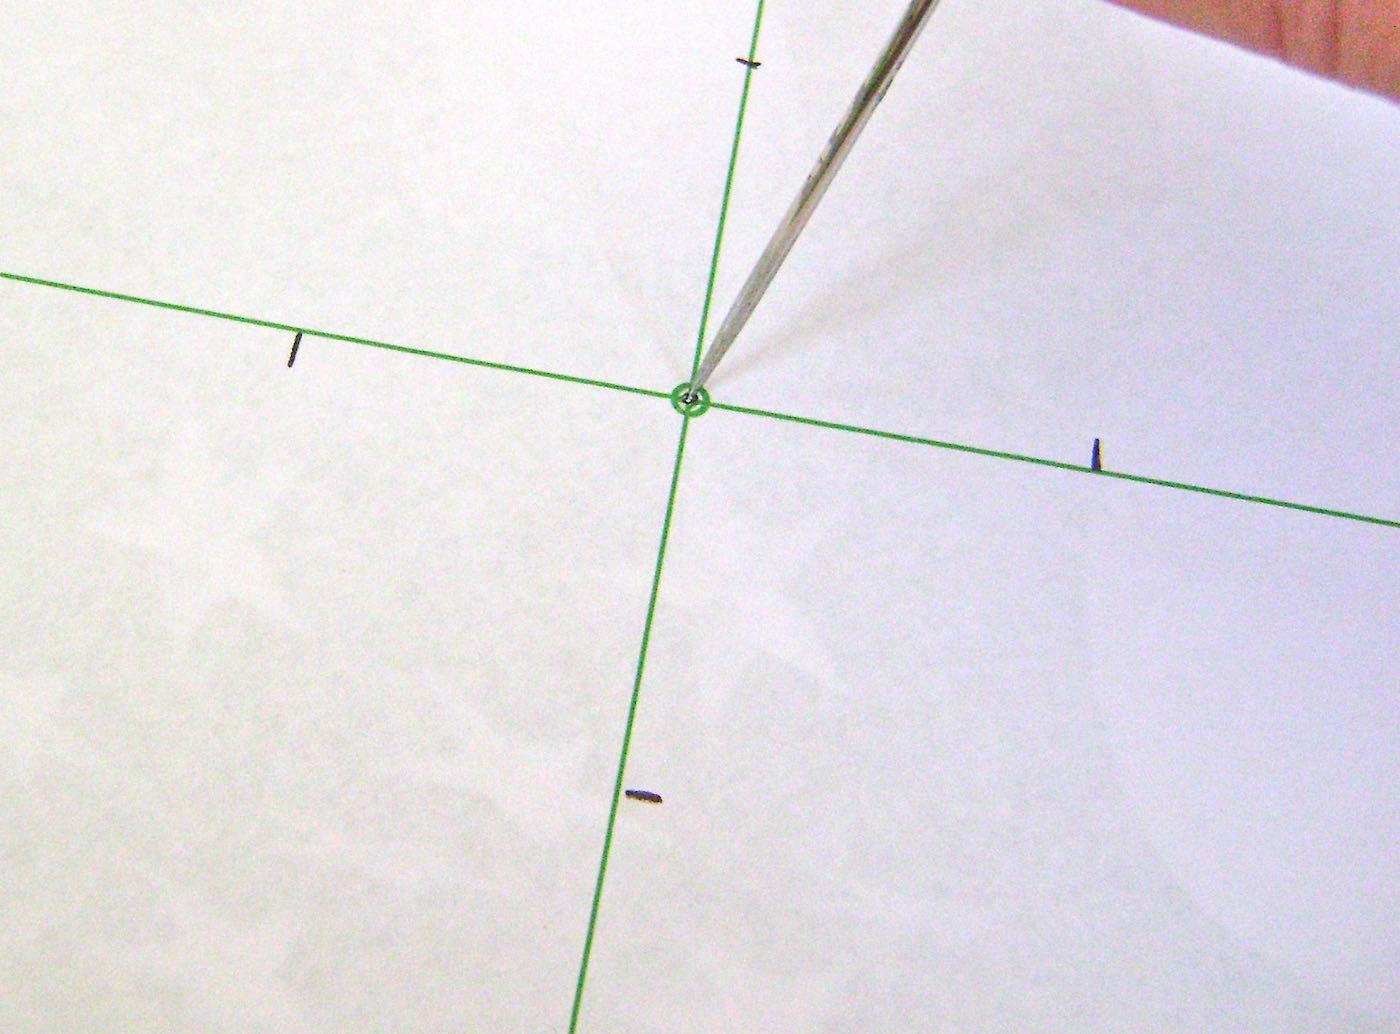 step 4 - Place the template over the printed page.  Use a thick needle to poke a whole through the paper center and through the printed square.  Use the needle to also poke holes in the four corner circles on the template.  Cut on the four diagonal green lines from the outer edge to the black horizontal lines.  Set aside.